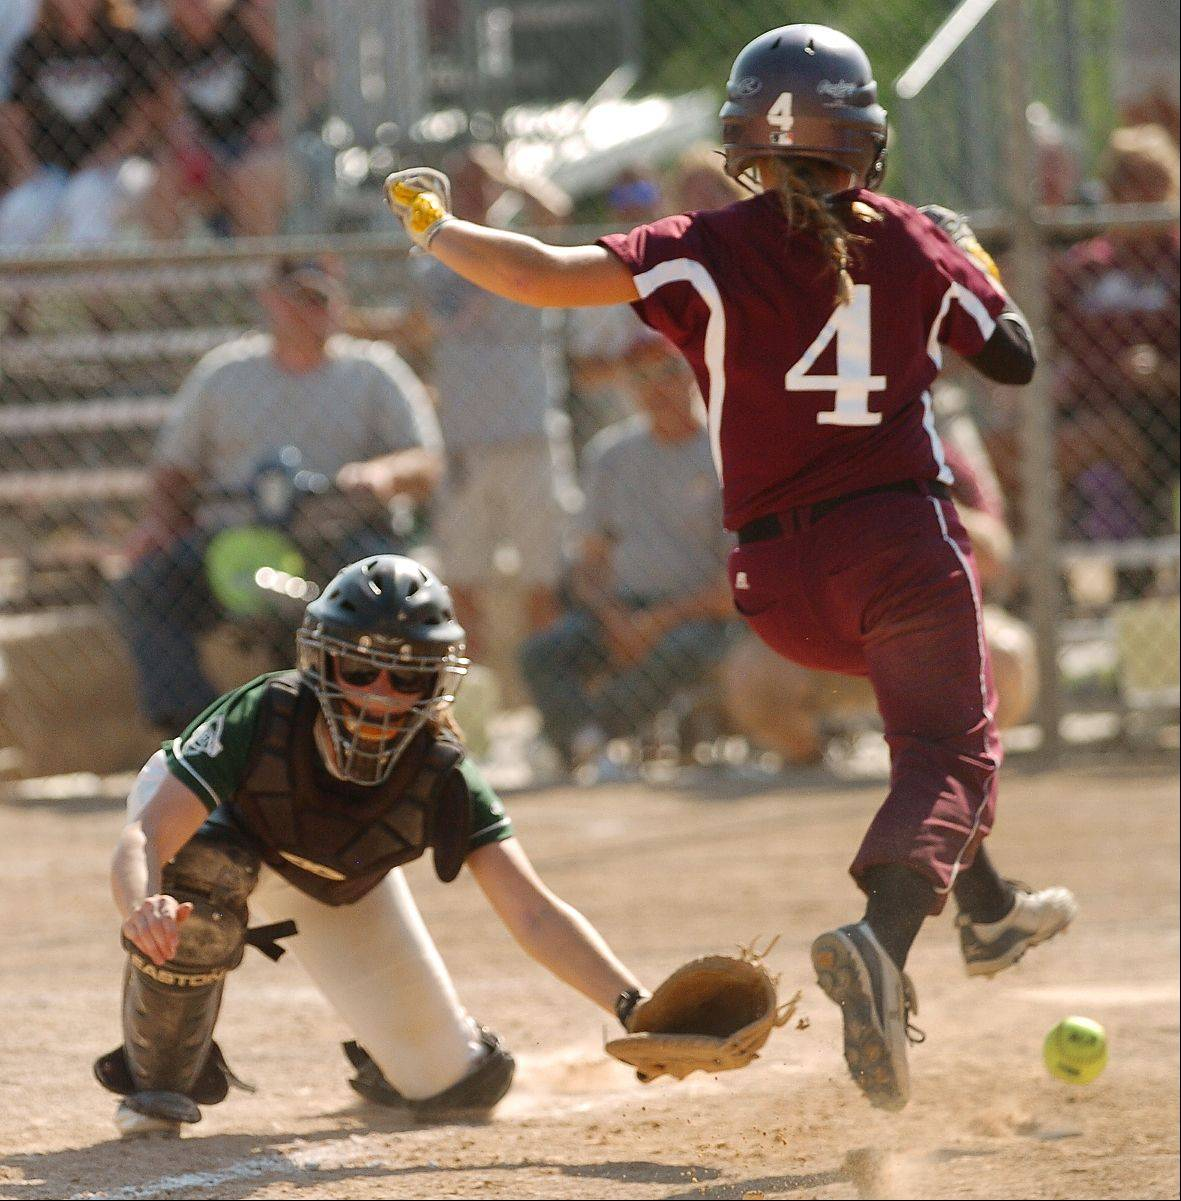 Elk Grove catcher Devin Parkison tries to tag Moline runner Emily Rache as she scores the go-ahead run in the eighth inning during the Class 4A softball third-place game.